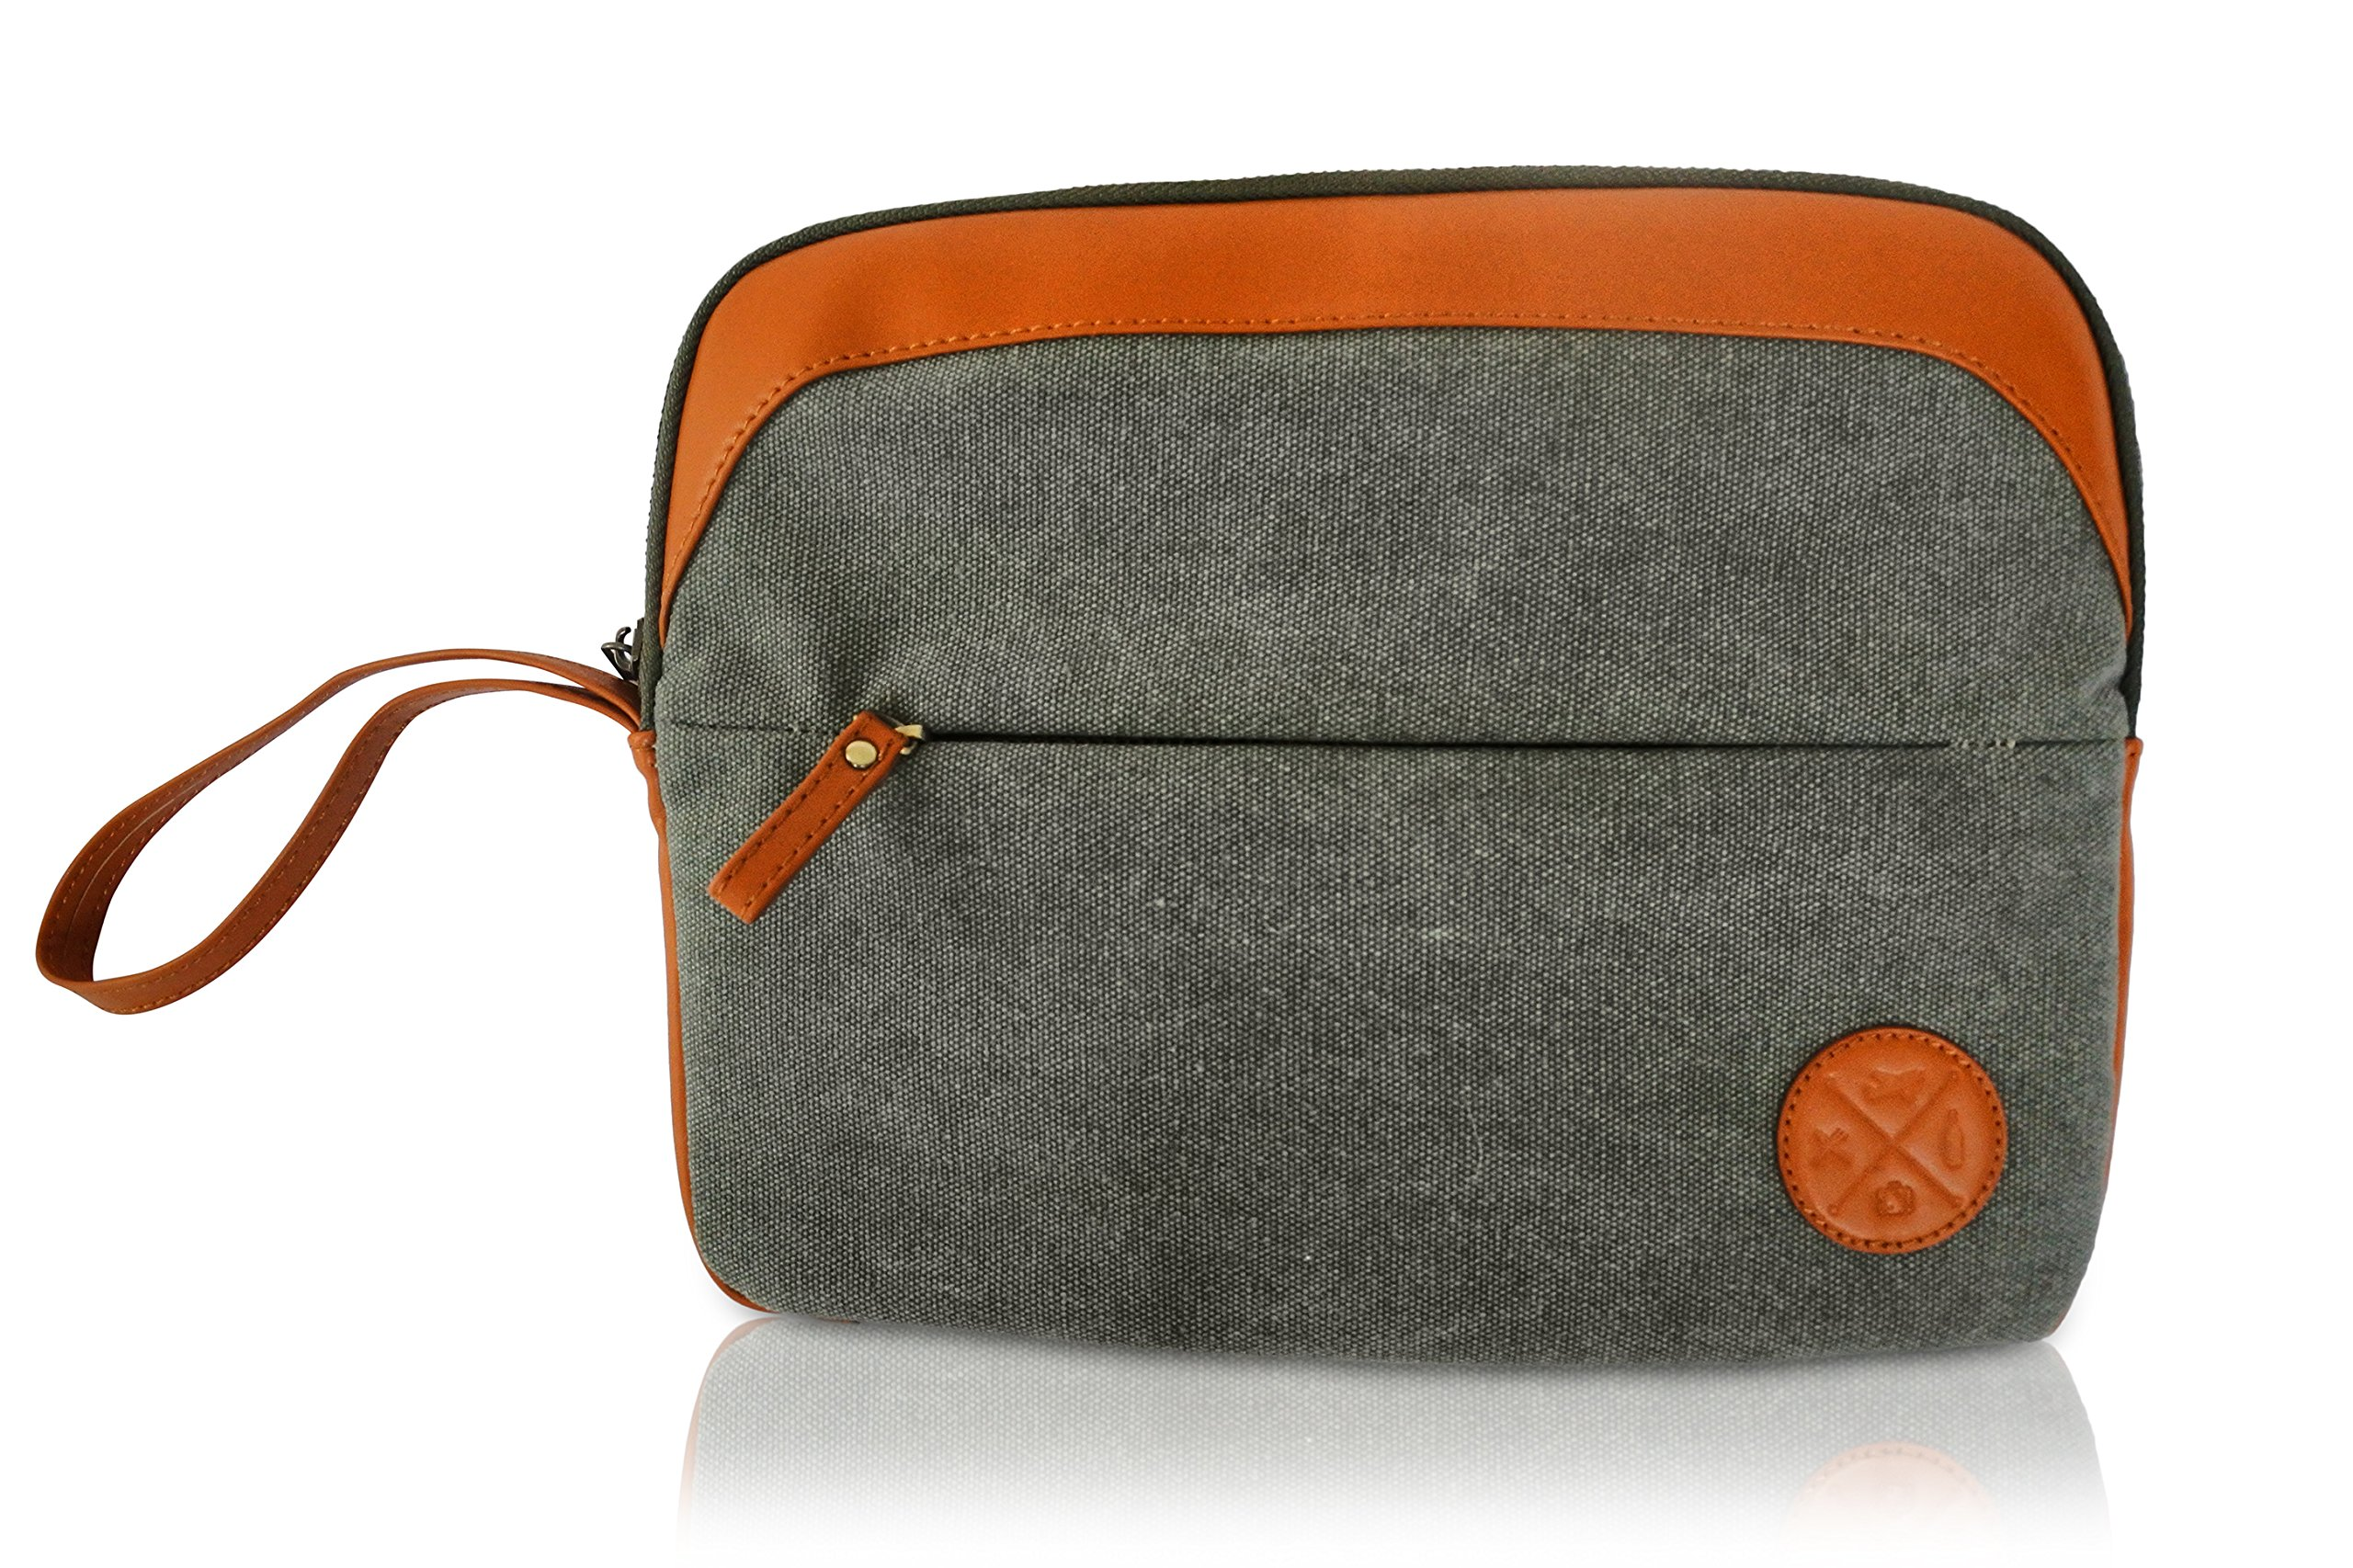 4 Piece Weekend Travel Bag Set - Includes: Canvas Tote, Toiletry Kit, Ipad Wristlet and Weekender Shoulder Bag. Weekend Travel made simple by TASTE DRINK GO. Makes a great Gift! by Taste Drink Go (Image #4)